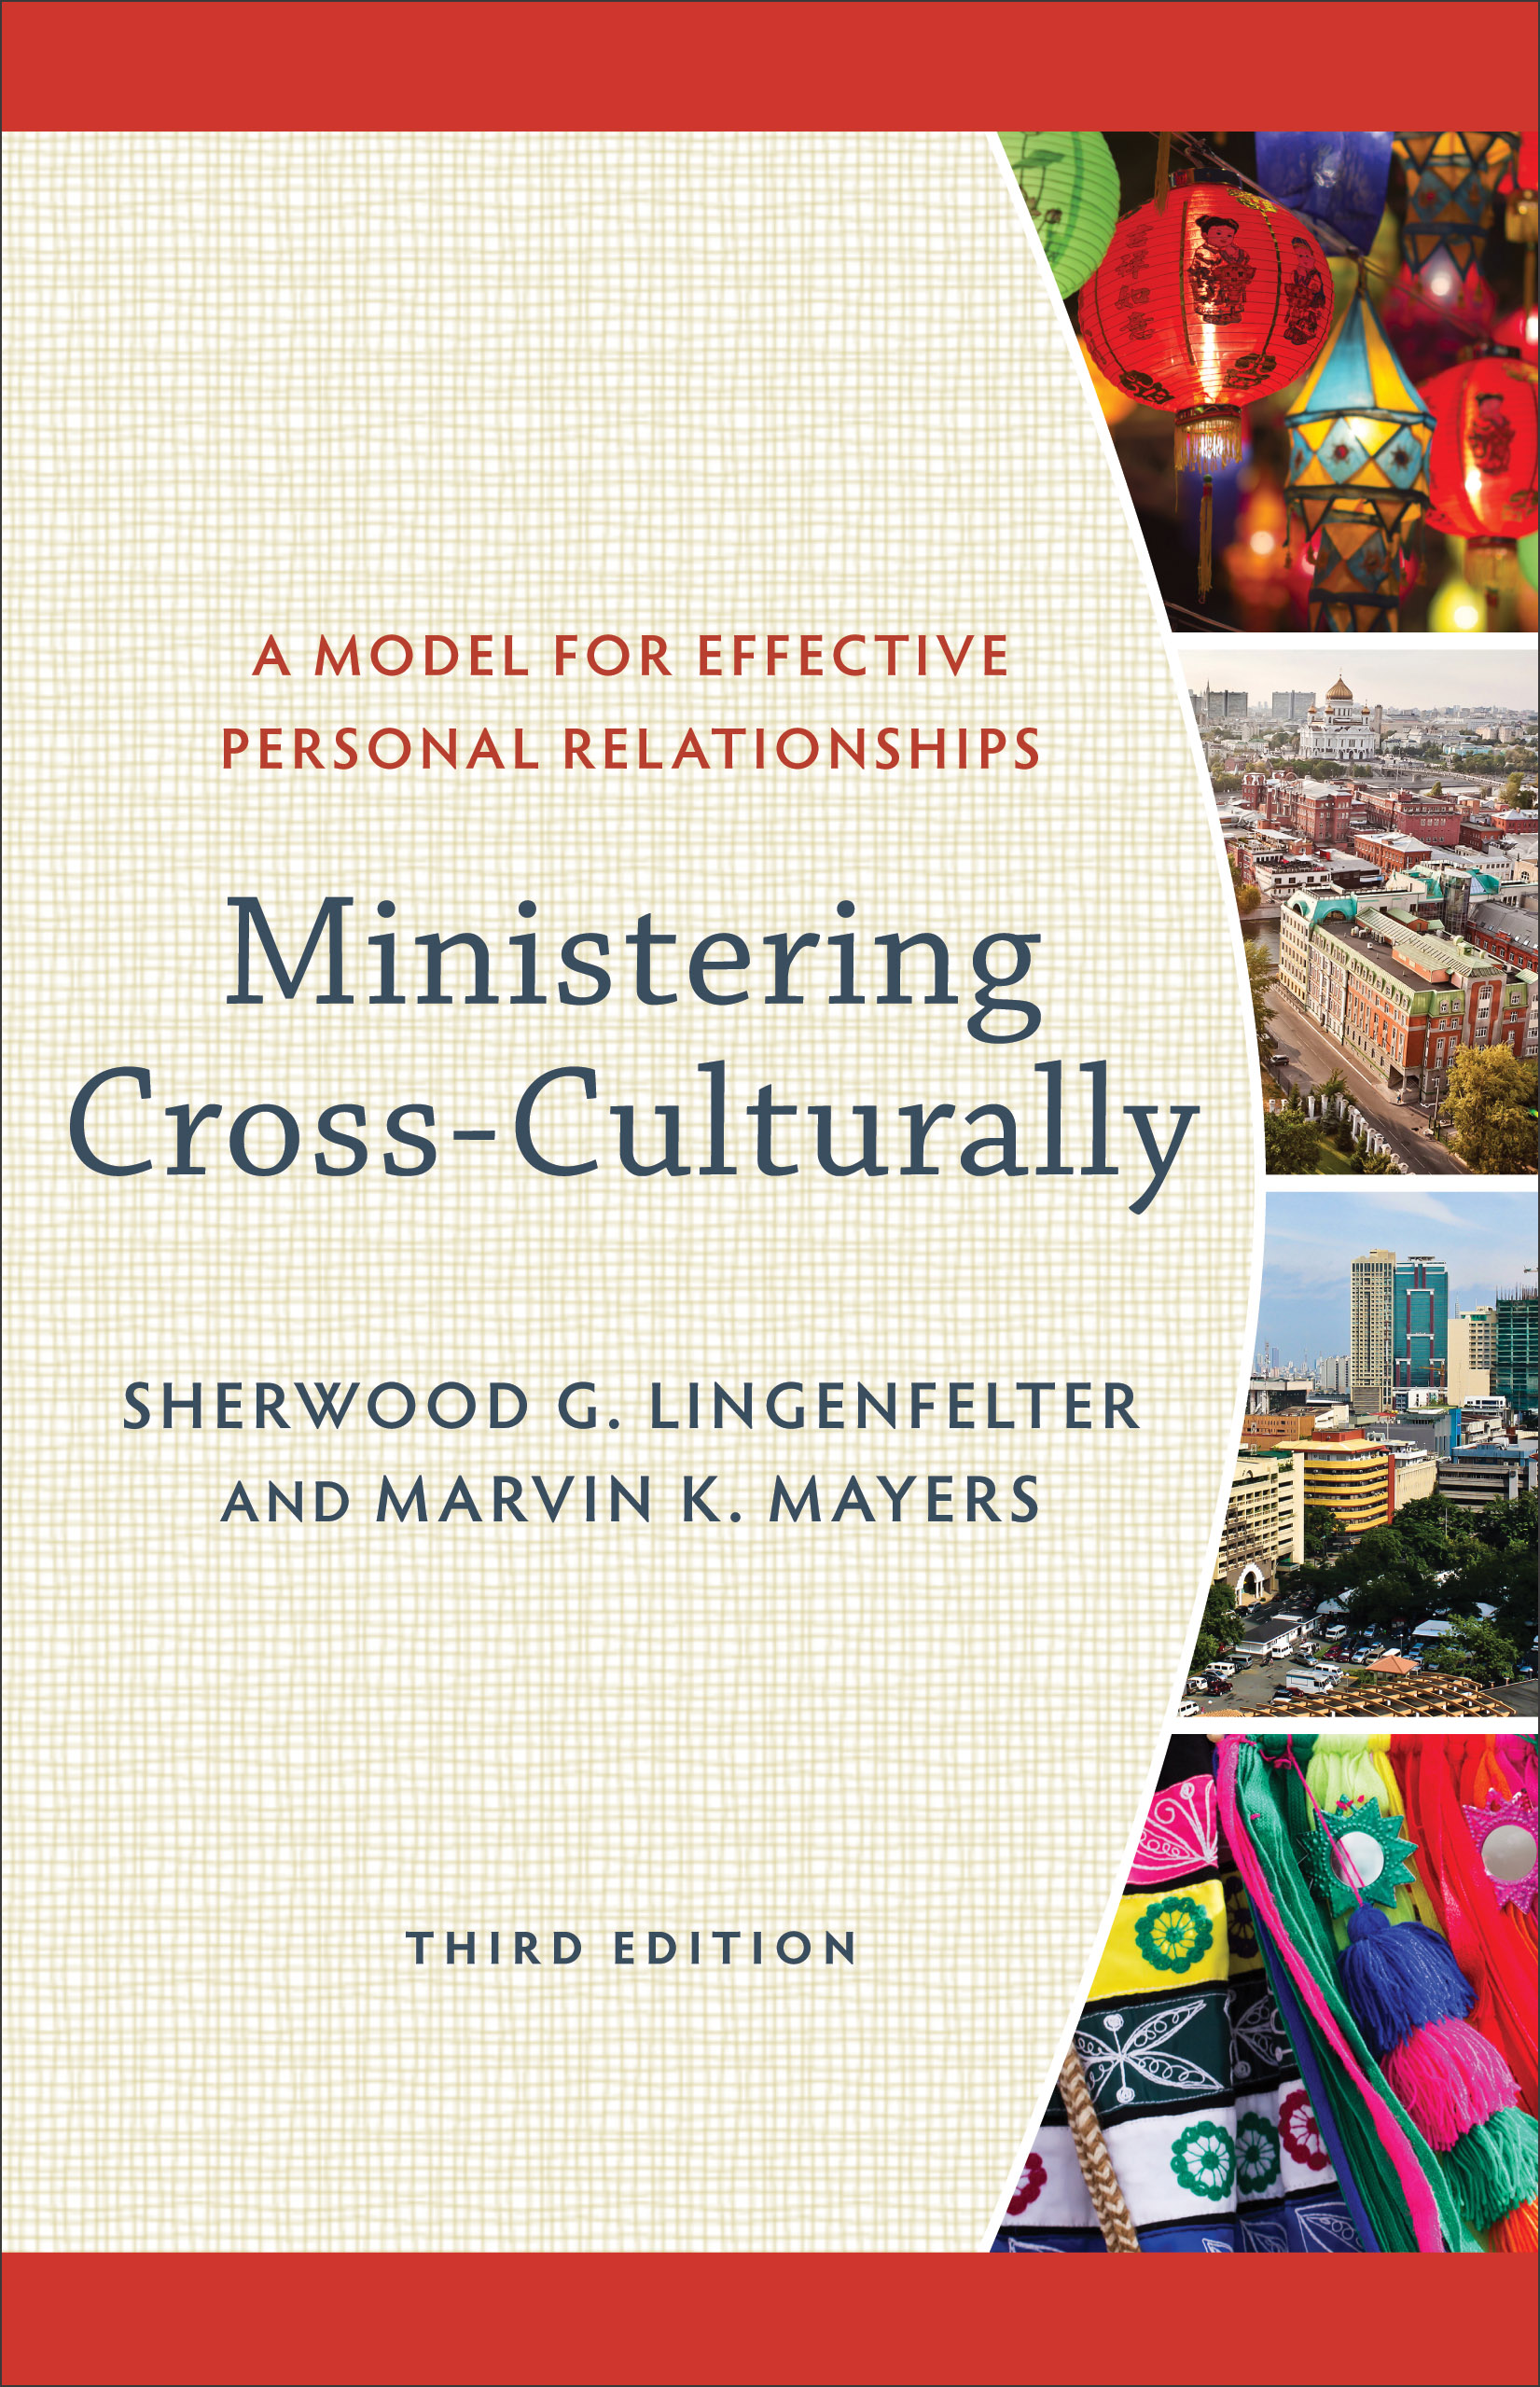 Ministering Cross-Culturally, 3rd Edition | Baker Publishing Group